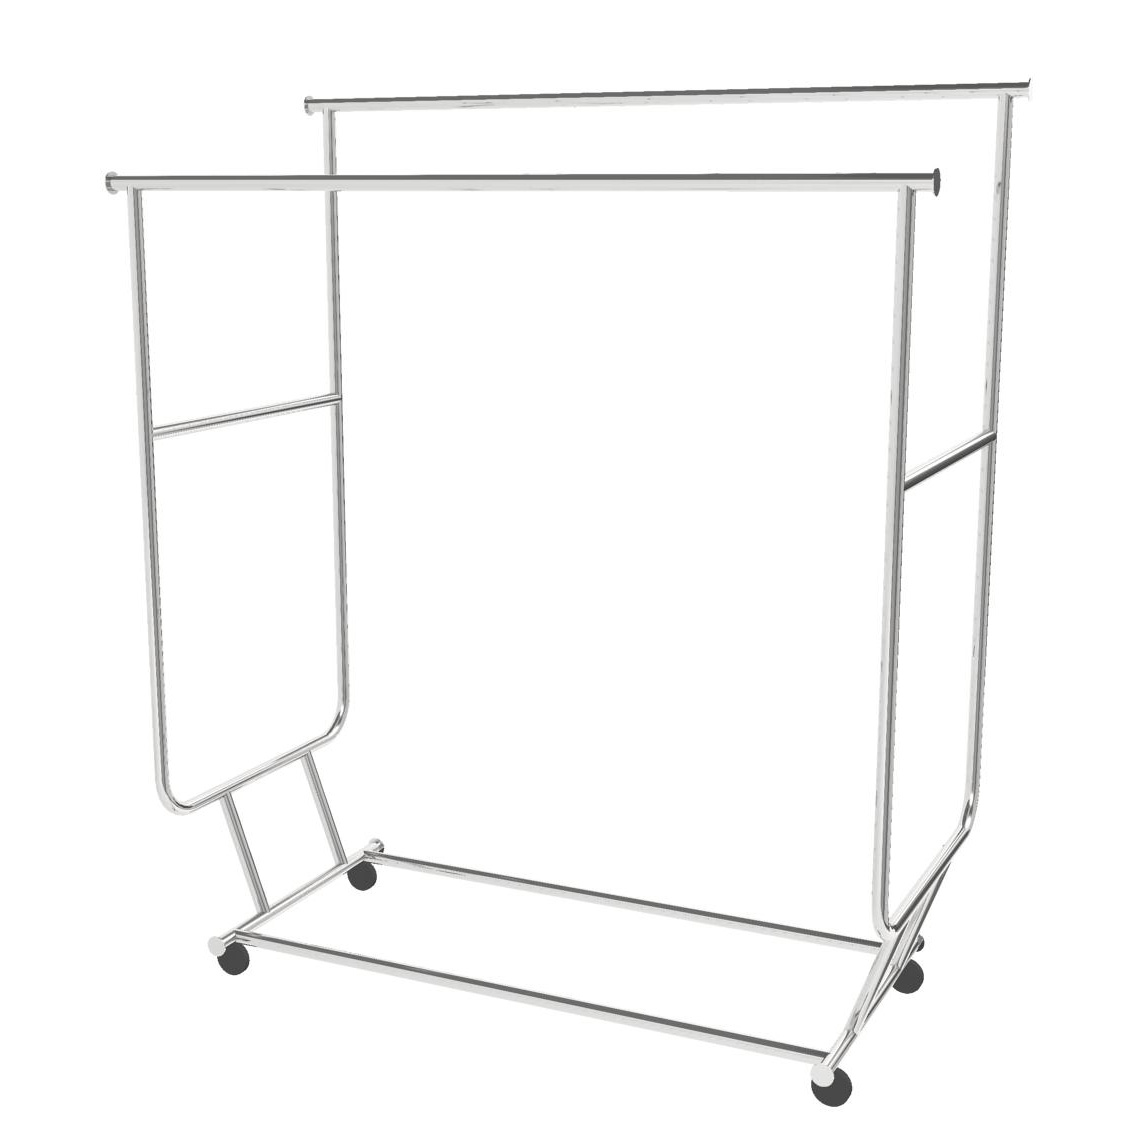 Collapsible-salesman-rack-with-double-hang-rails.jpg